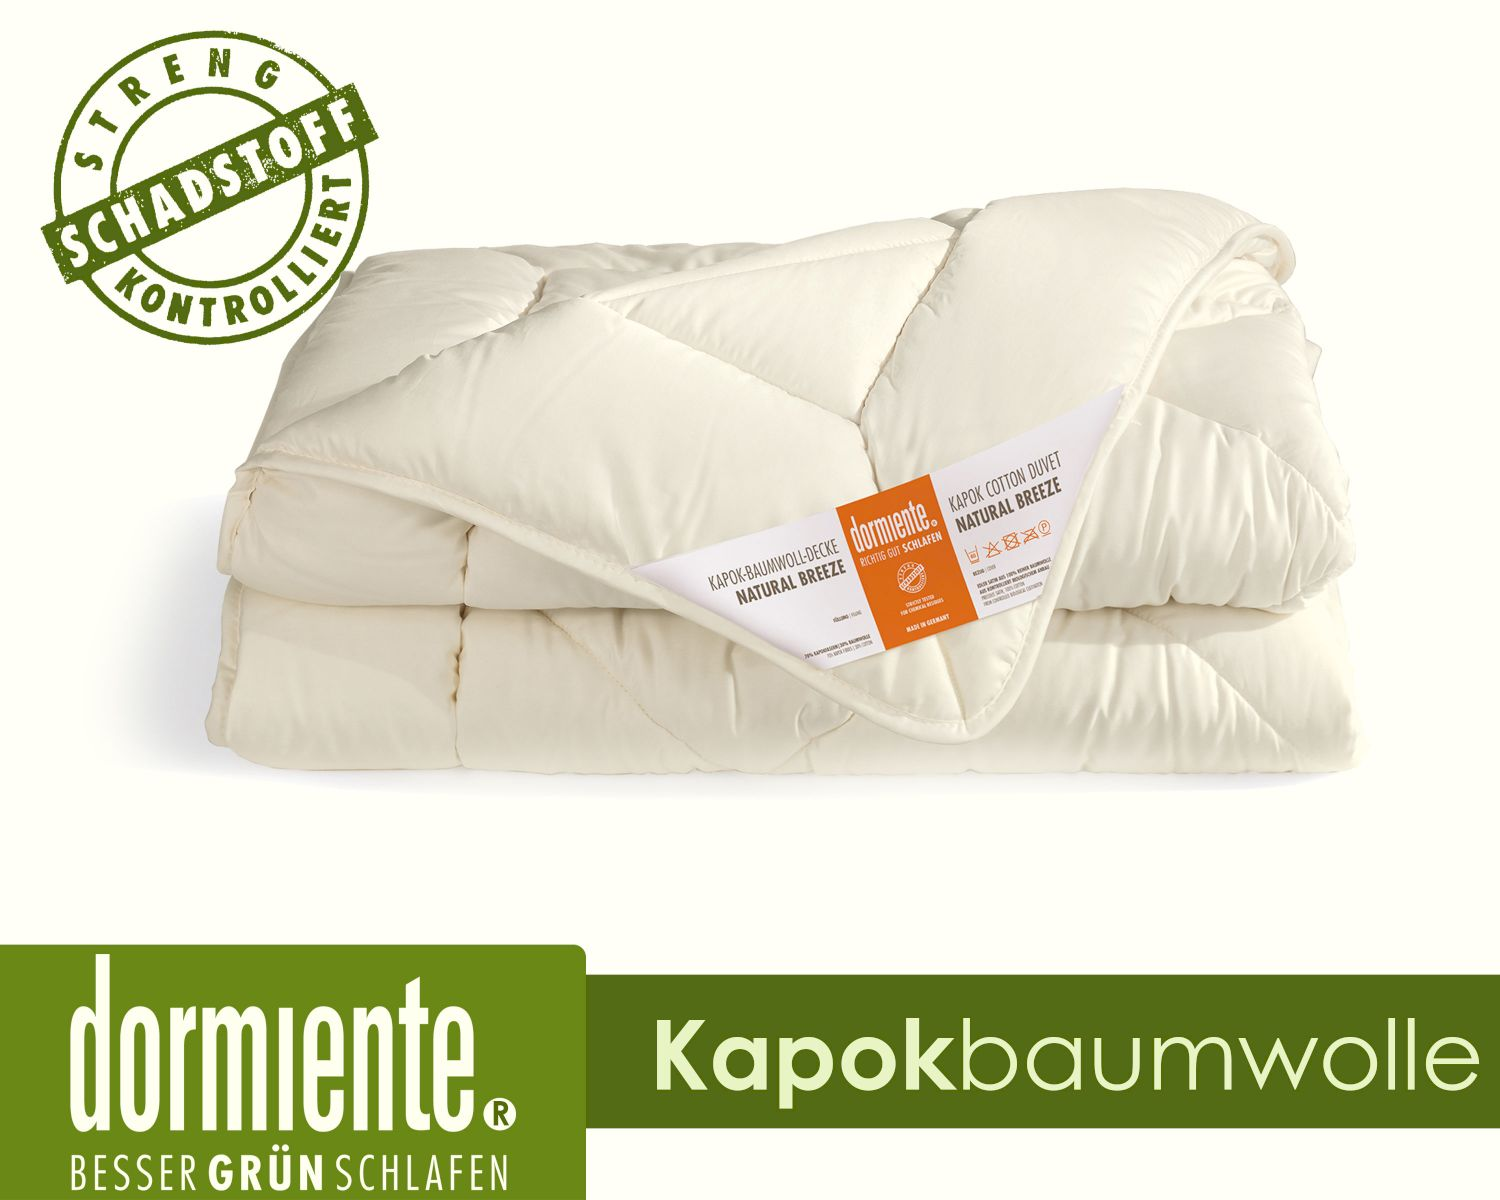 Kapok Bettdecken Dormiente Natural Breeze Kapokbaumwolle Natur Bettdecke